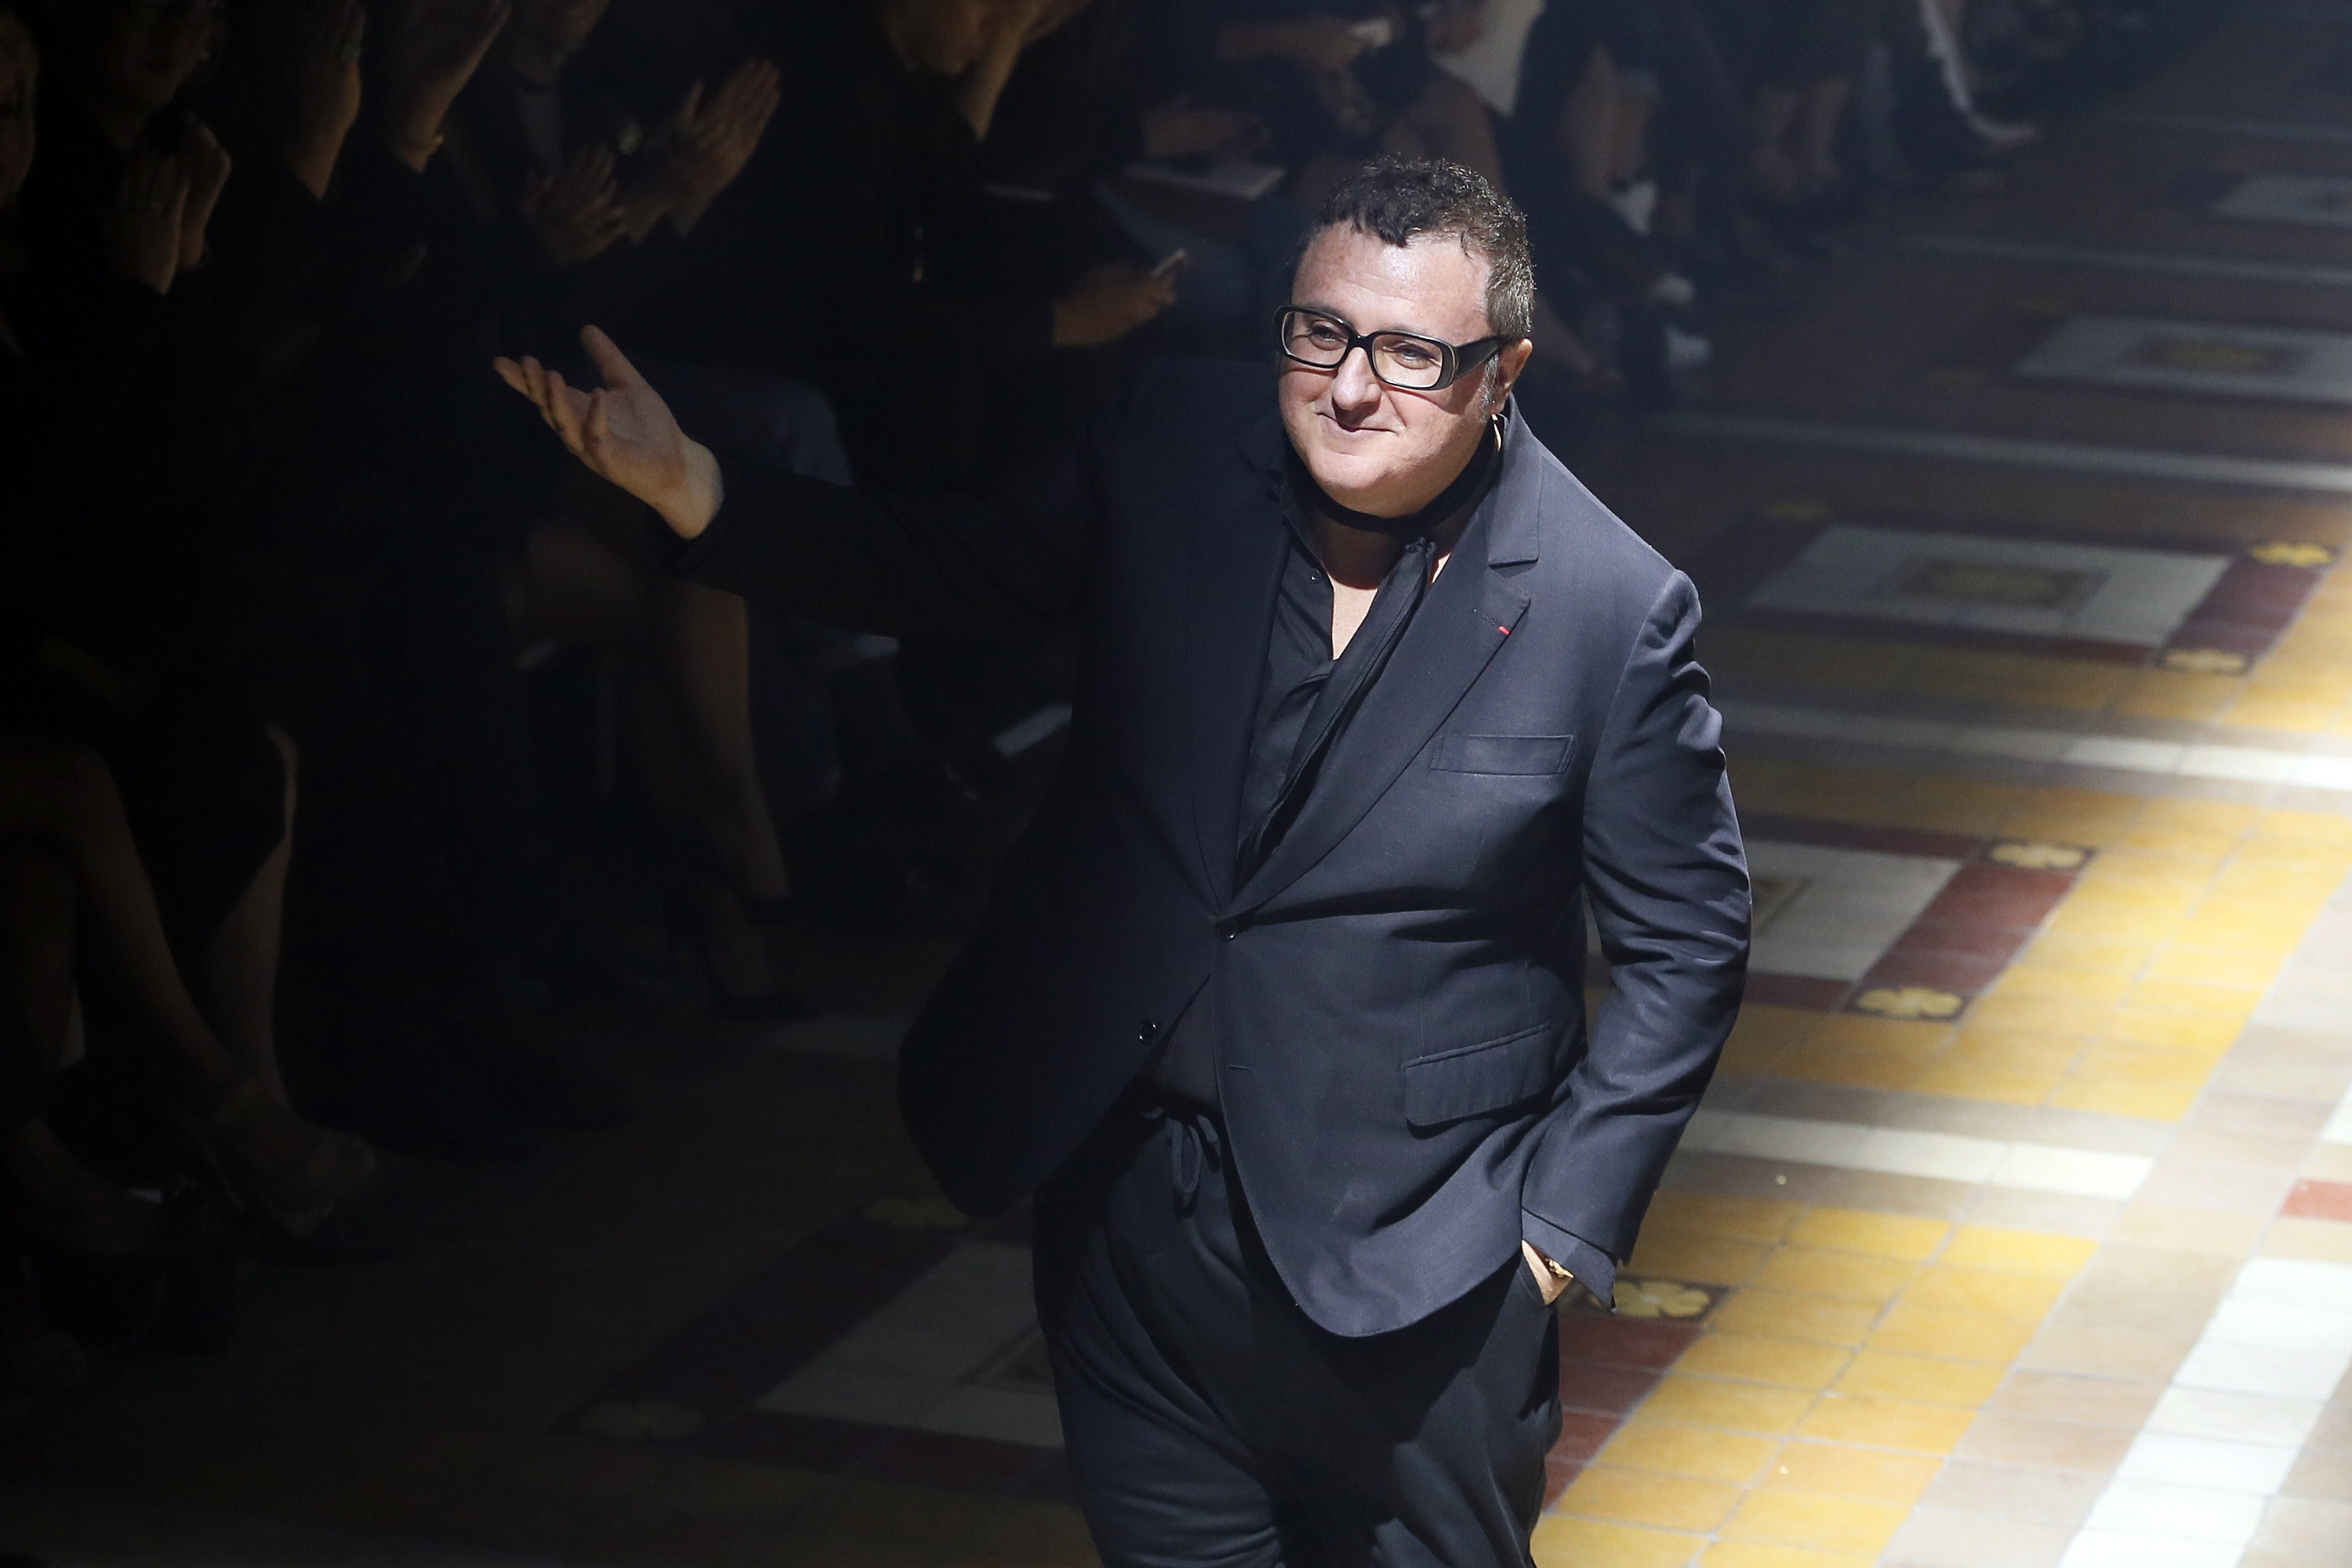 Alber Elbaz at the end of the Lanvin\'s 2015 Spring/Summer fashion show. Getty Images.